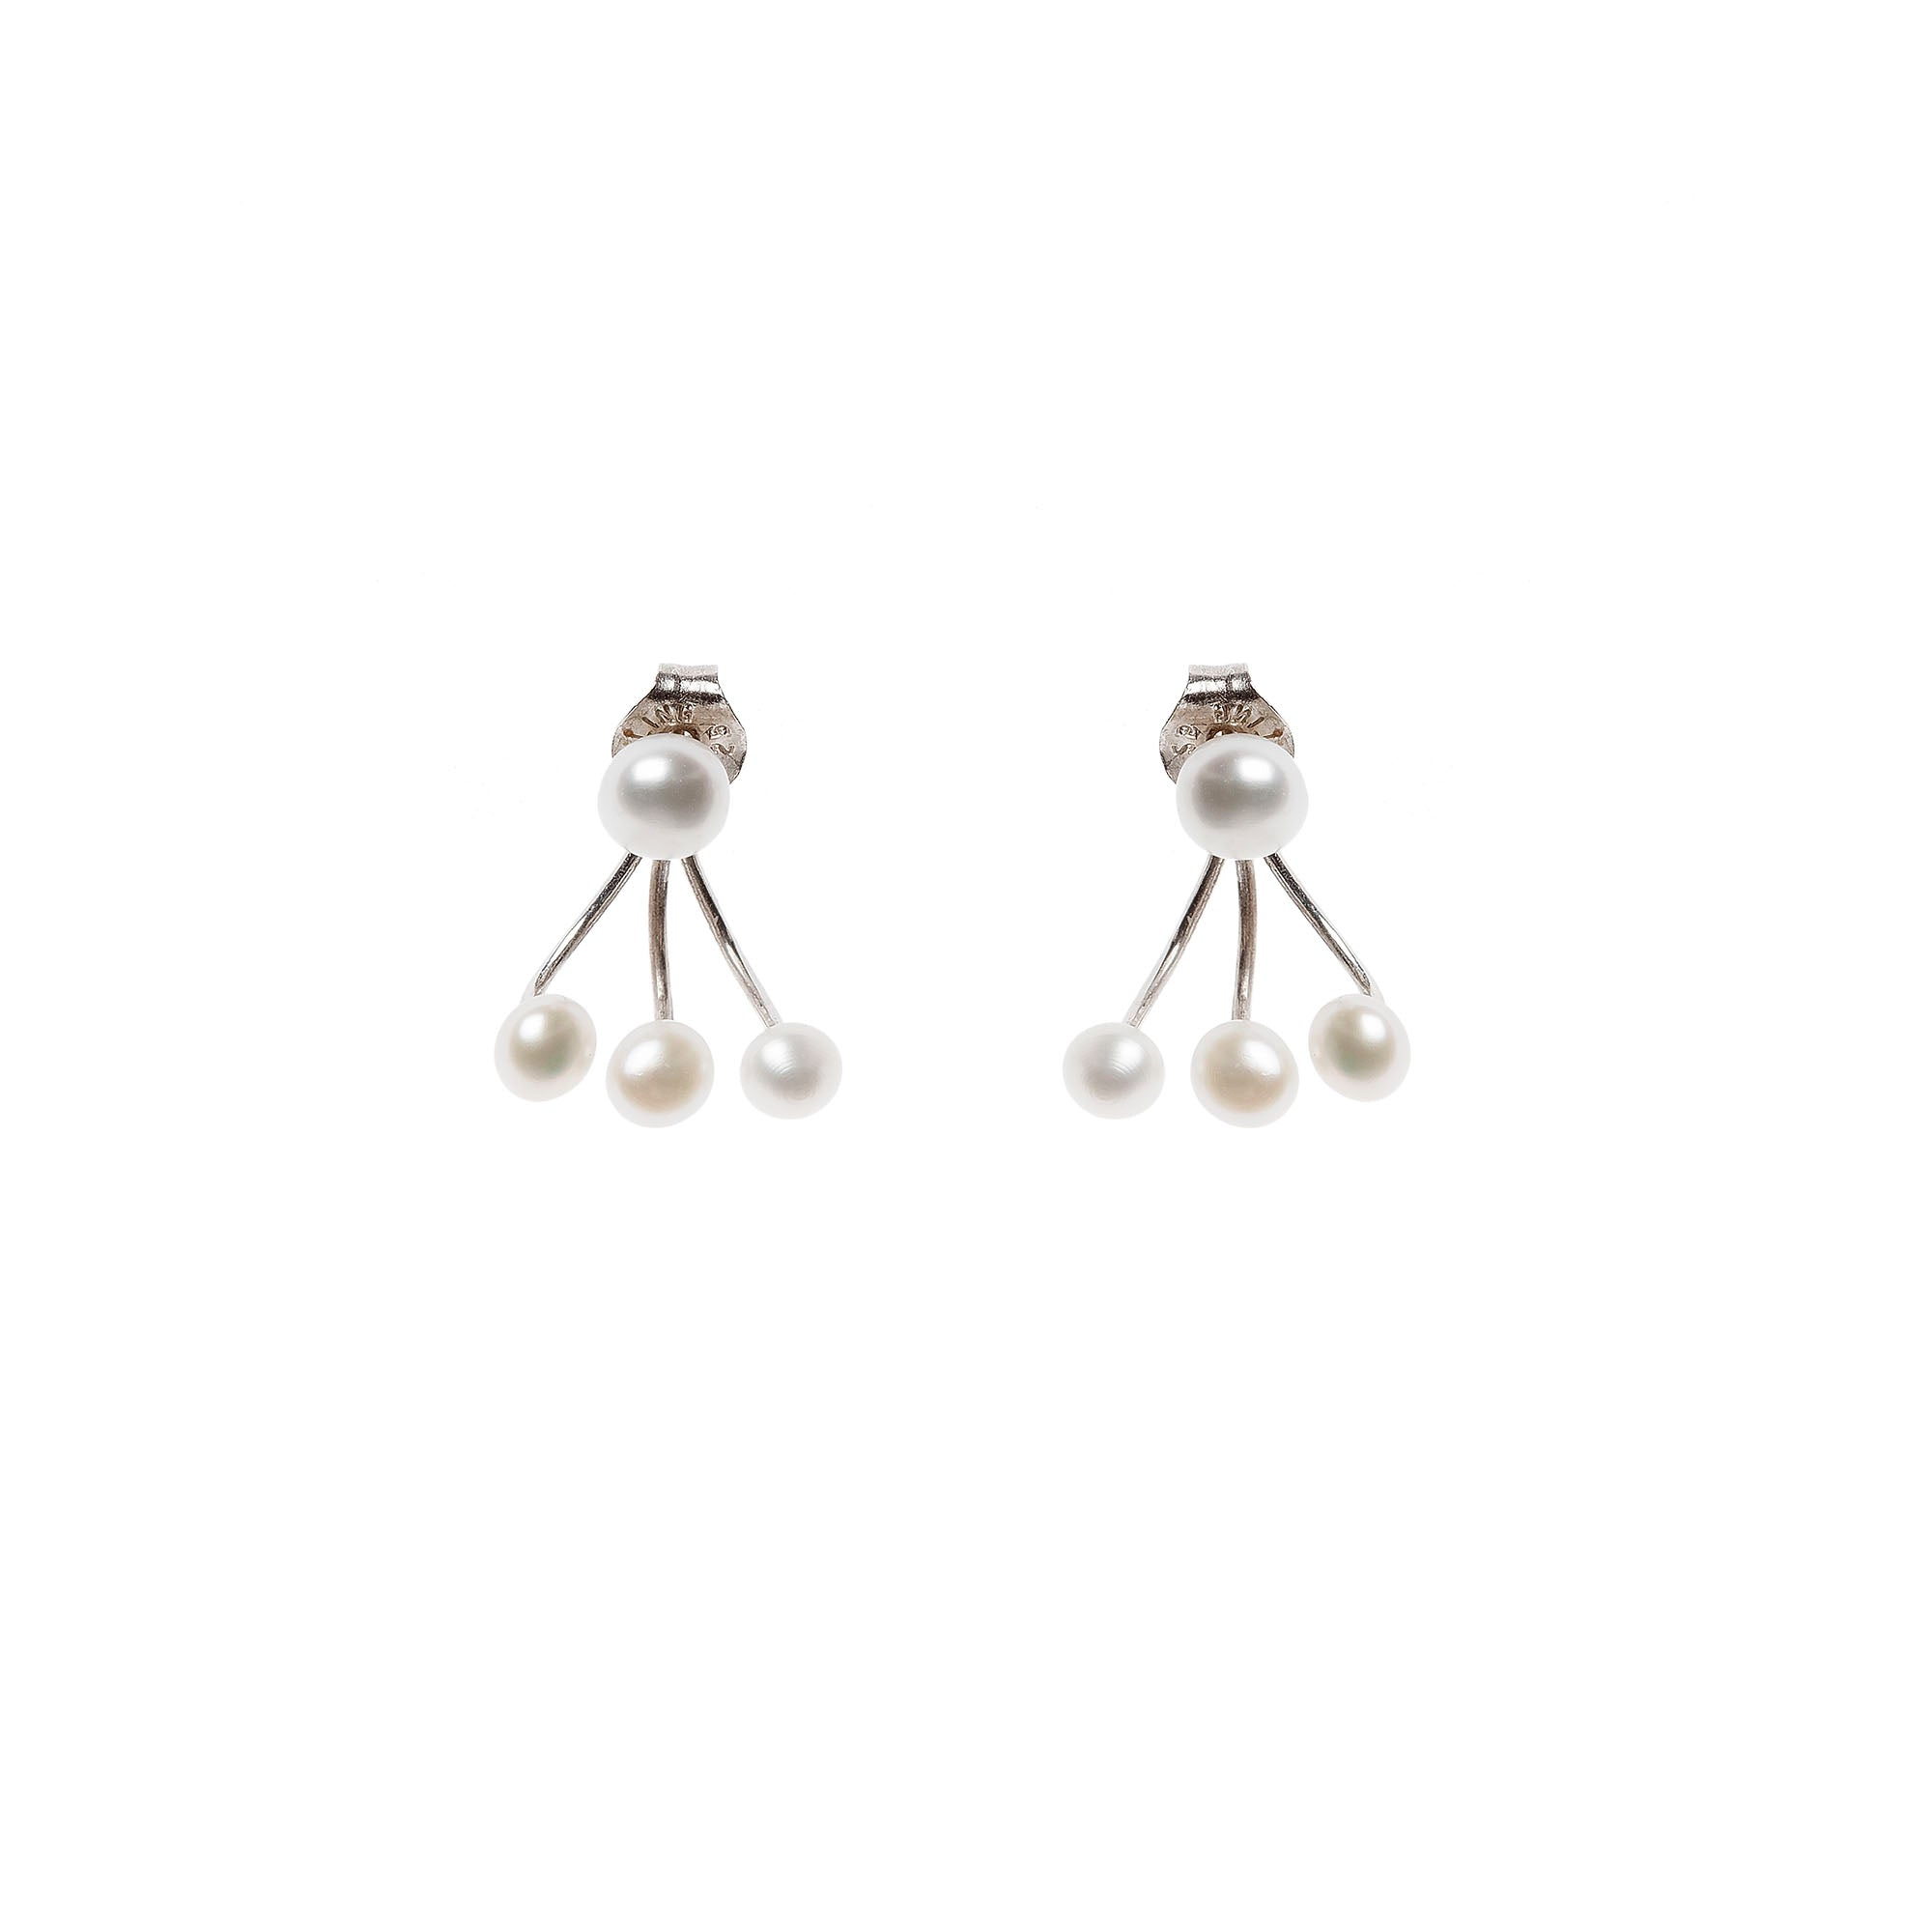 Aurore Havenne Halo Calypso Earrings bijou minimalist jewel silver